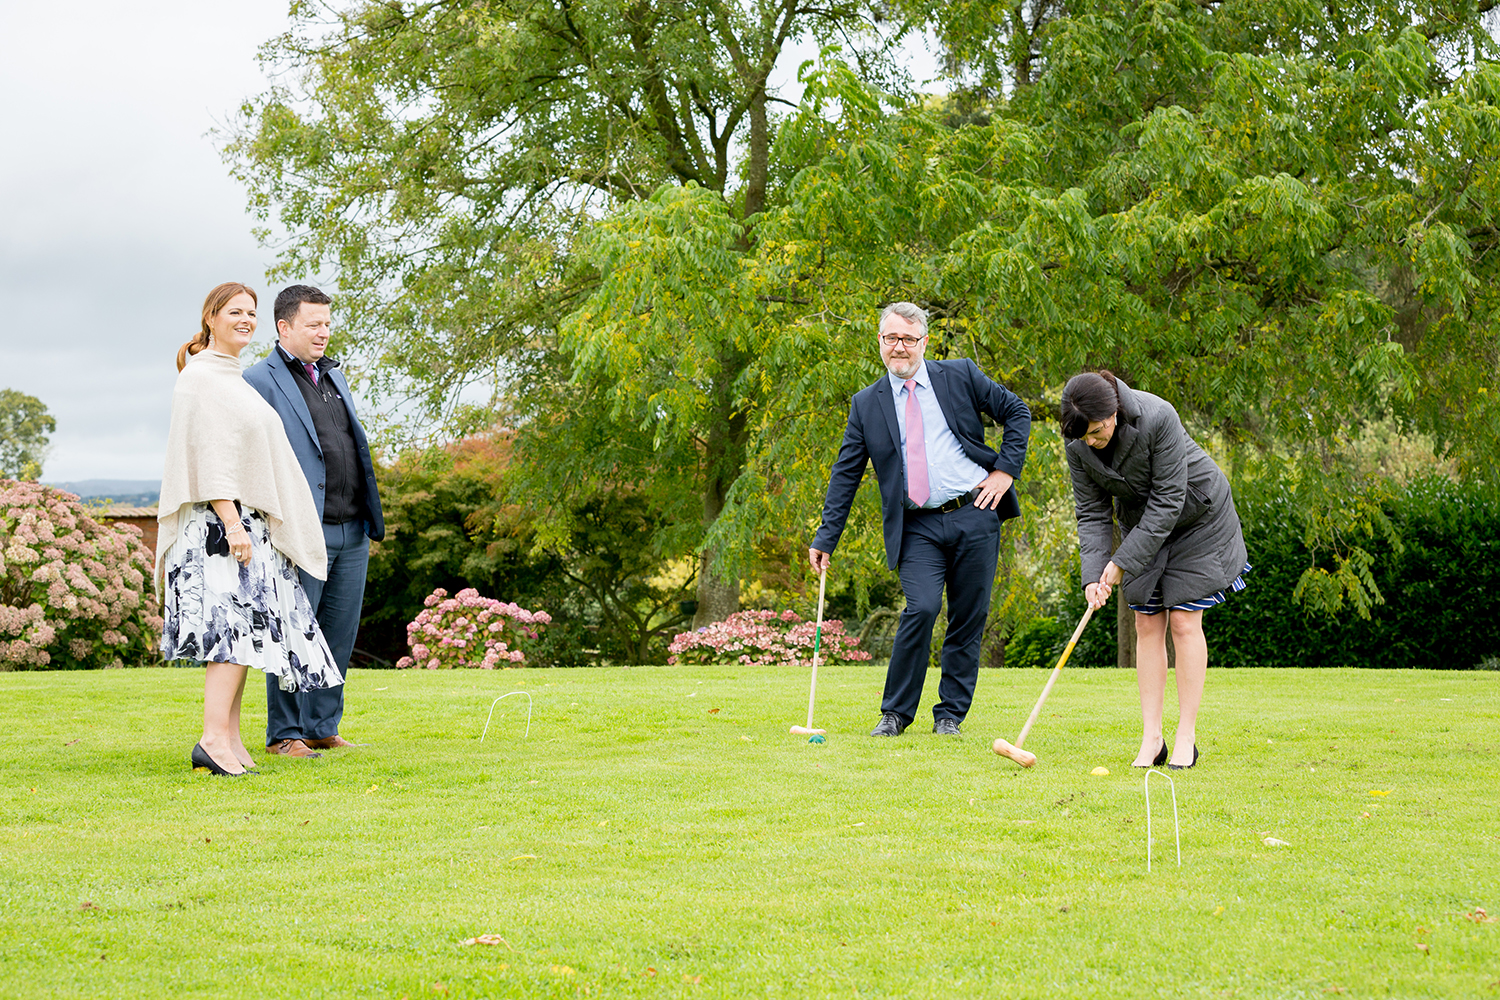 guests play croquet